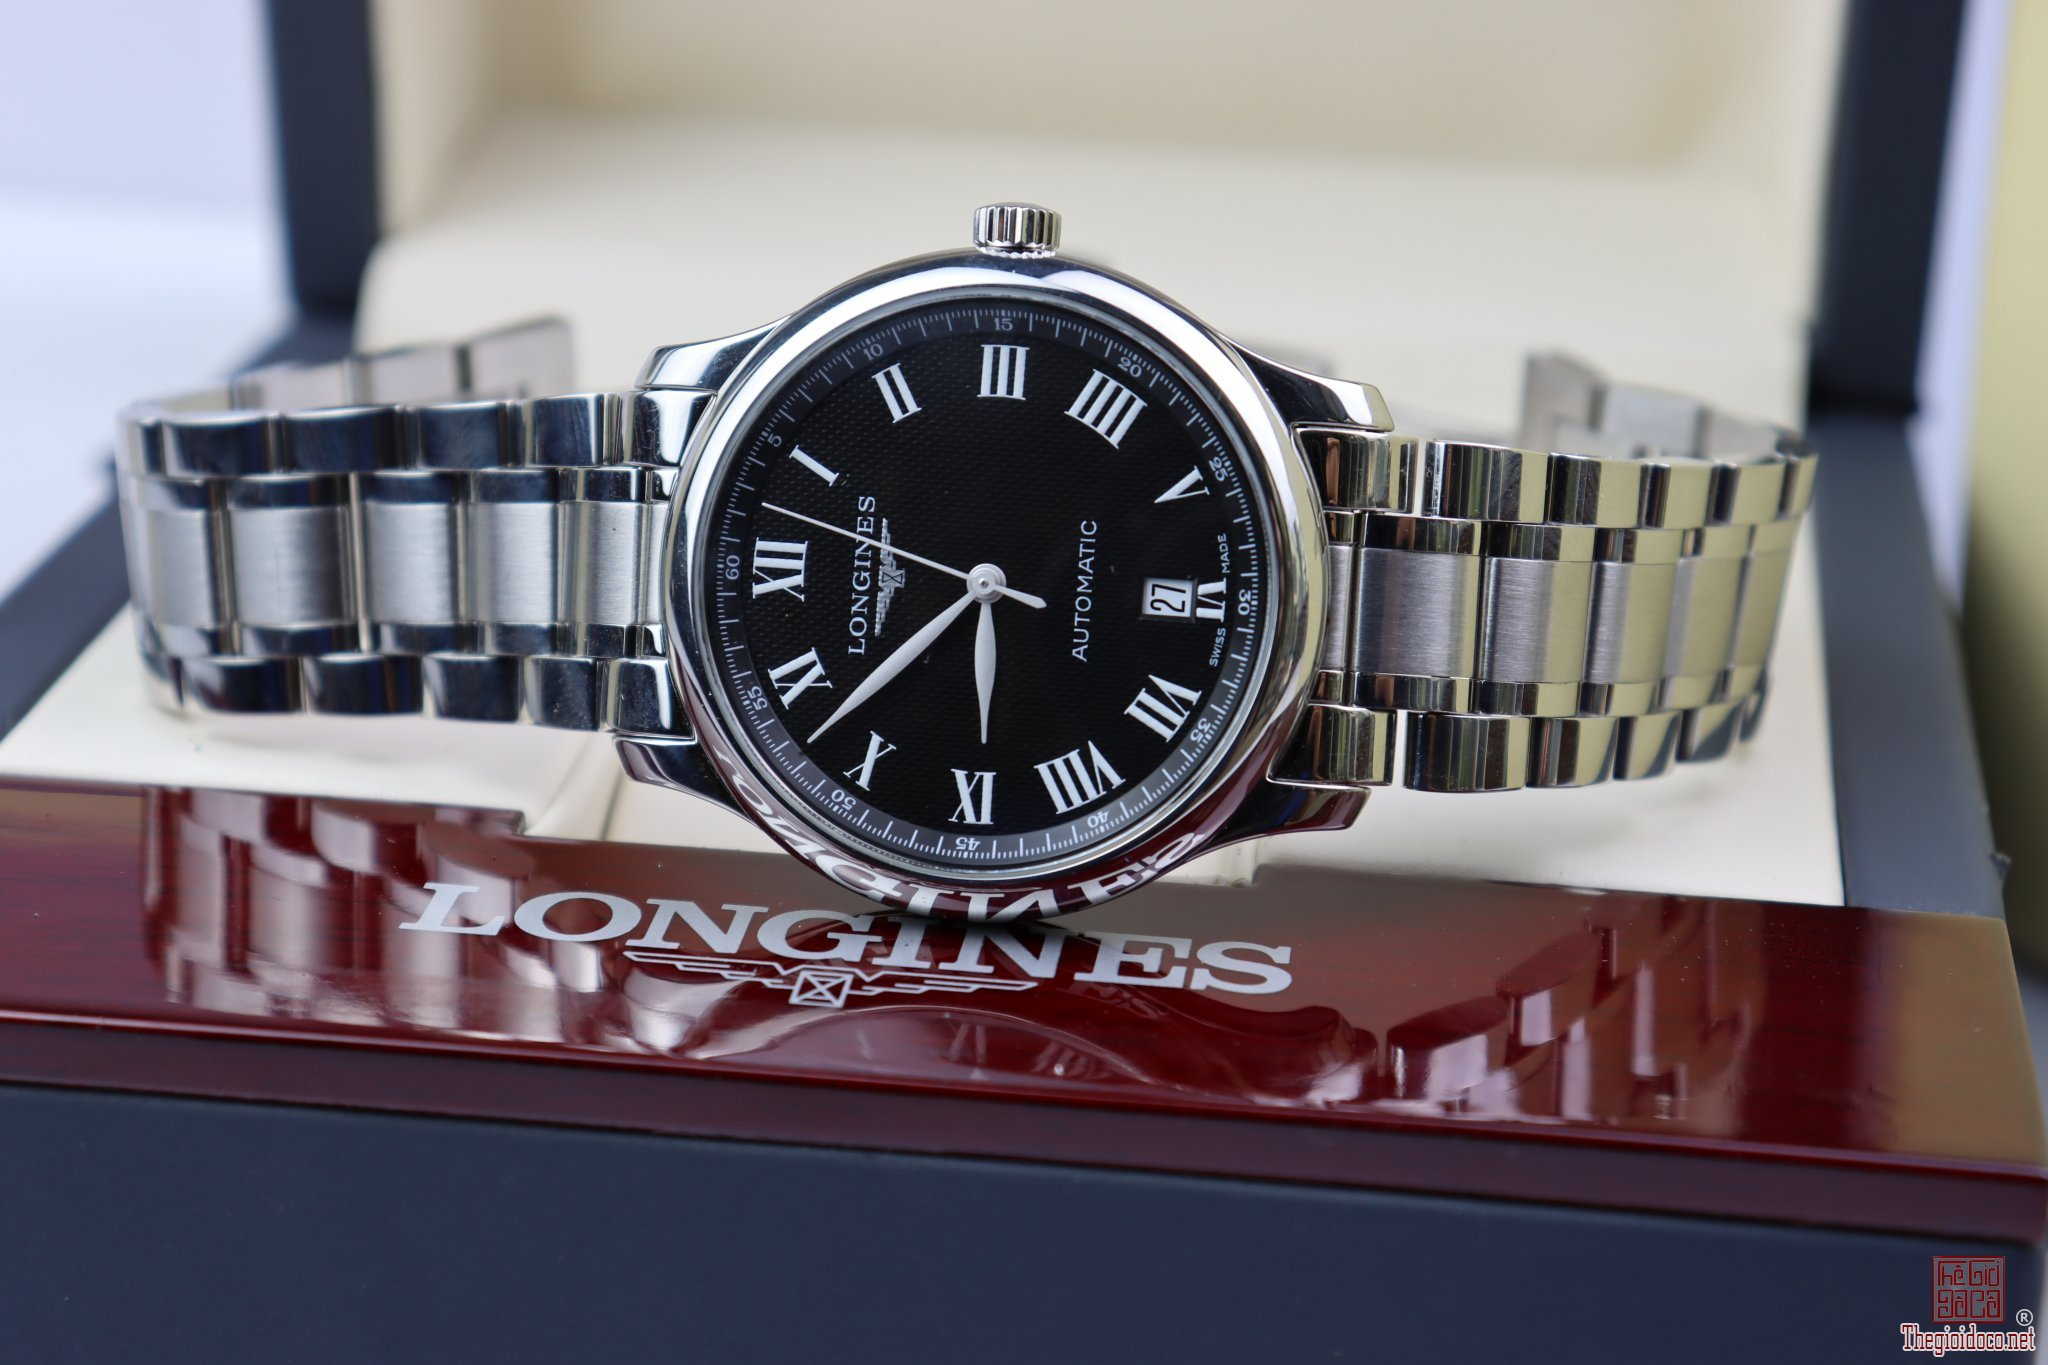 Longines Master Collection Automatic Nam Fullbox Size 38.5 mm New 99% thanh lý giá rẻ